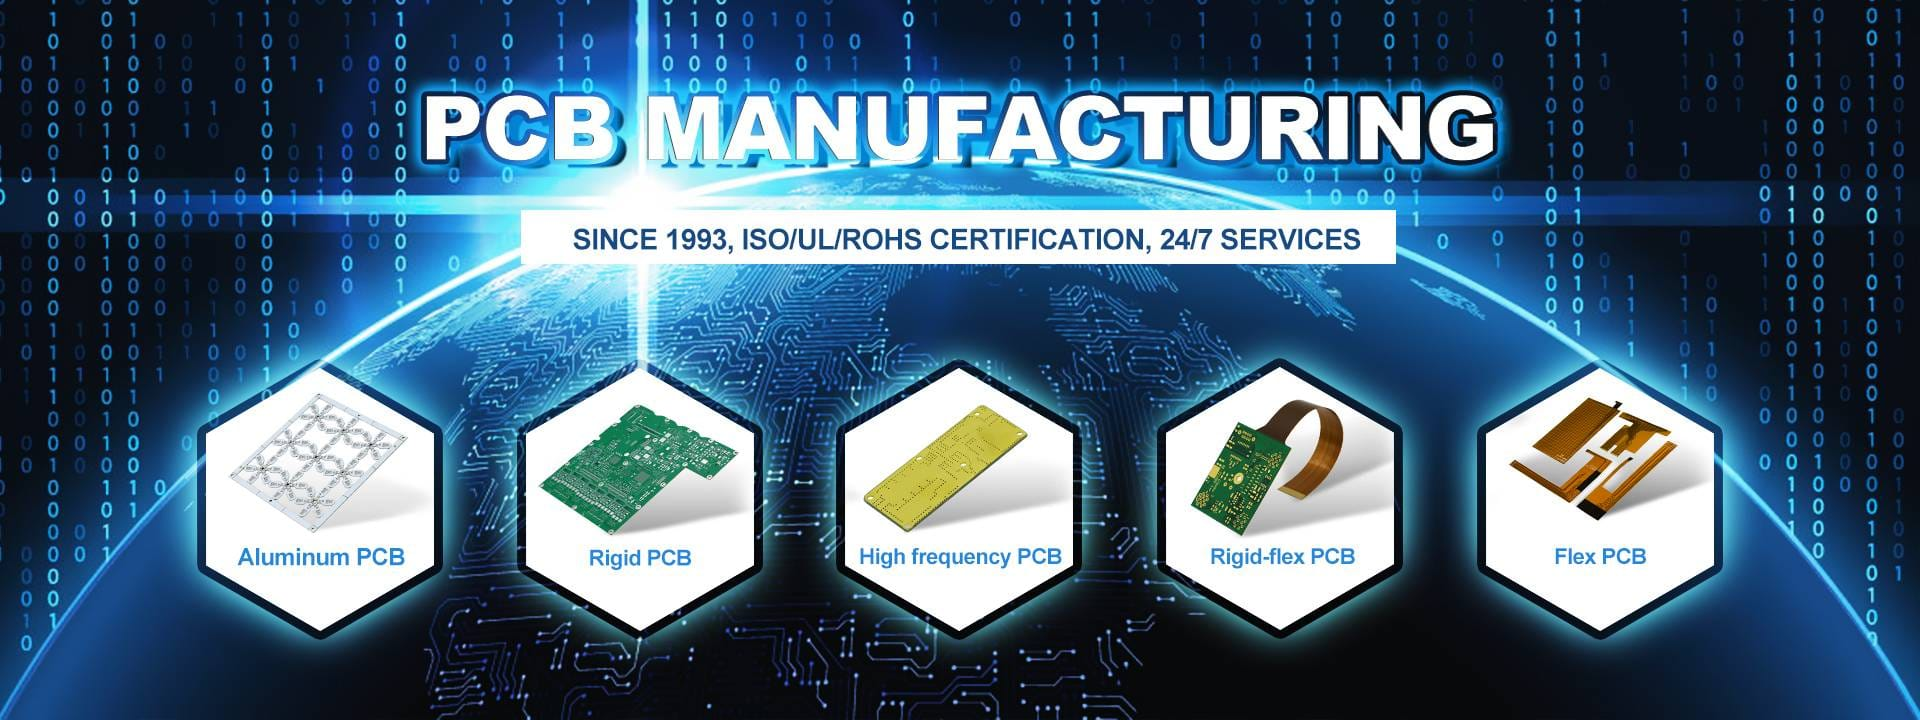 As the PCB supplier for more than 25 years, we provide quick turn PCB at a low pricing.